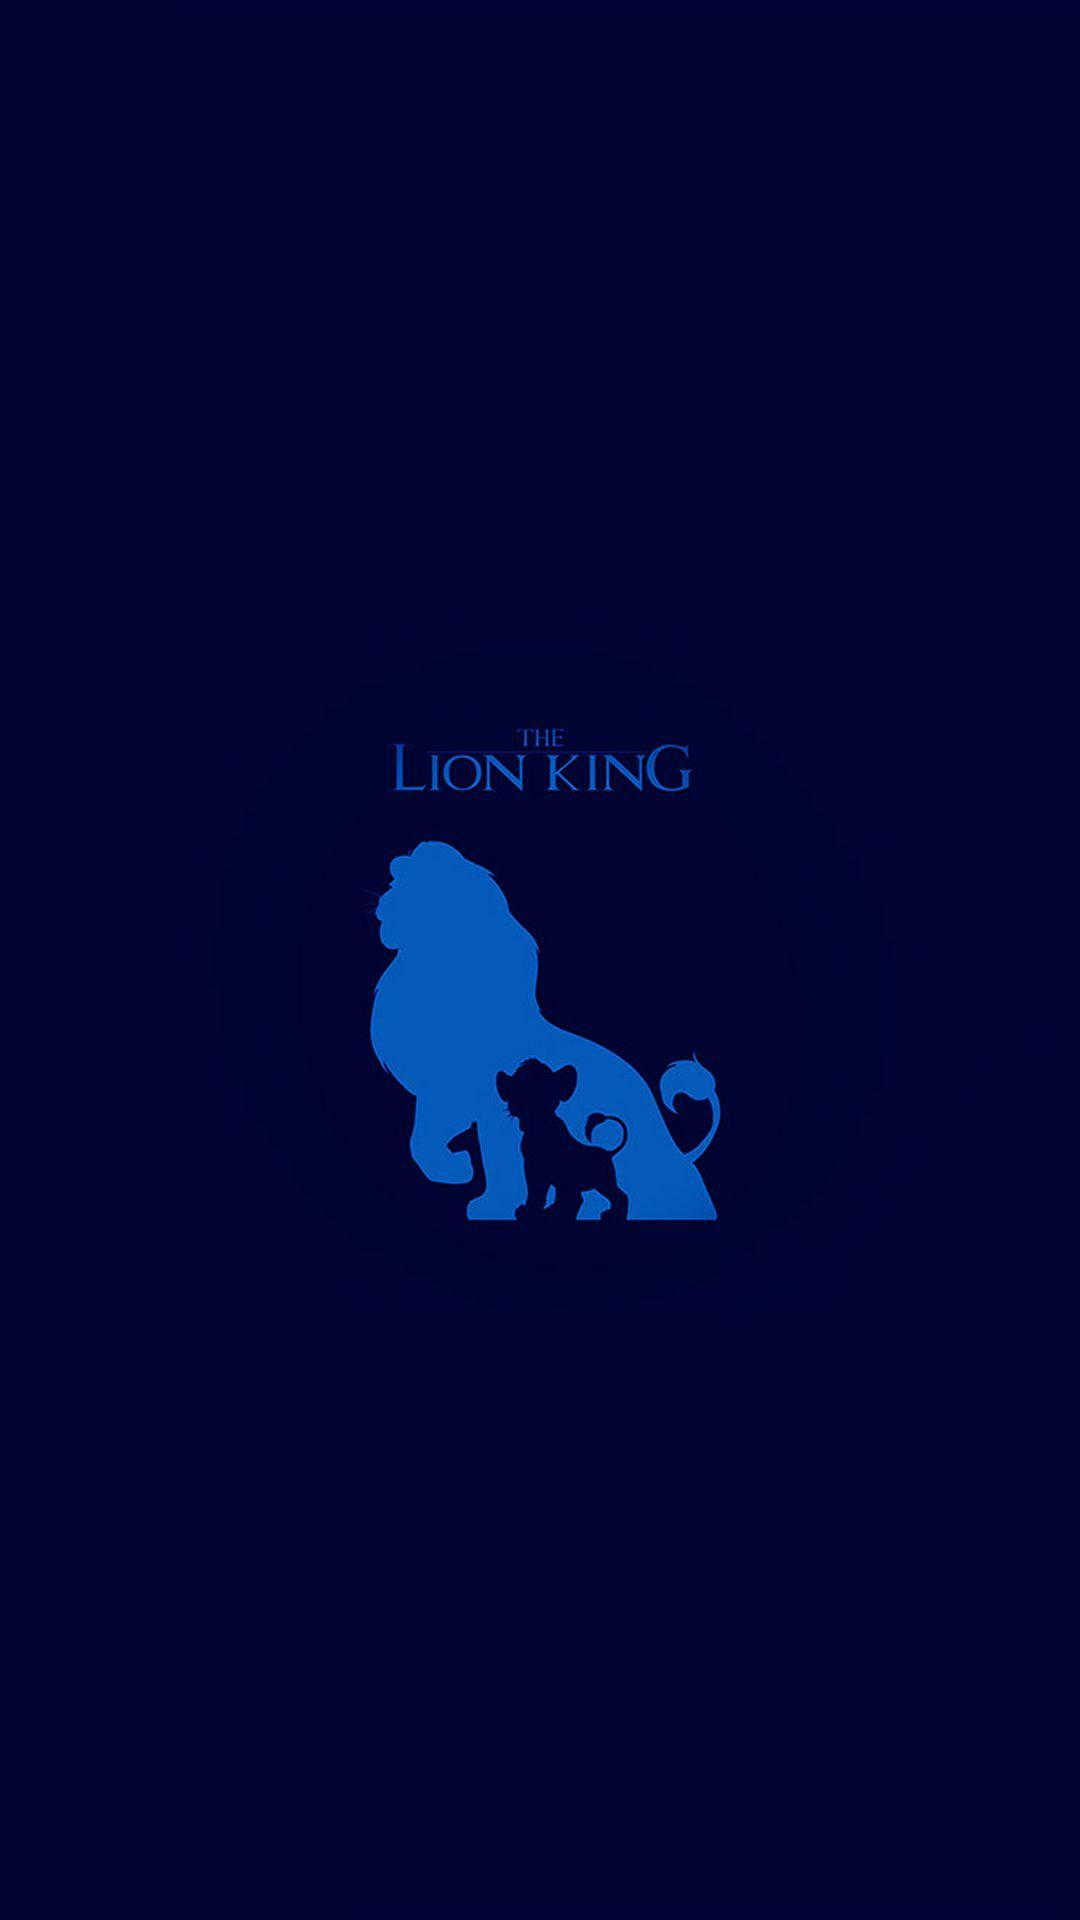 The Lion King Blue Minimal Art iPhone 6 Wallpaper Download .